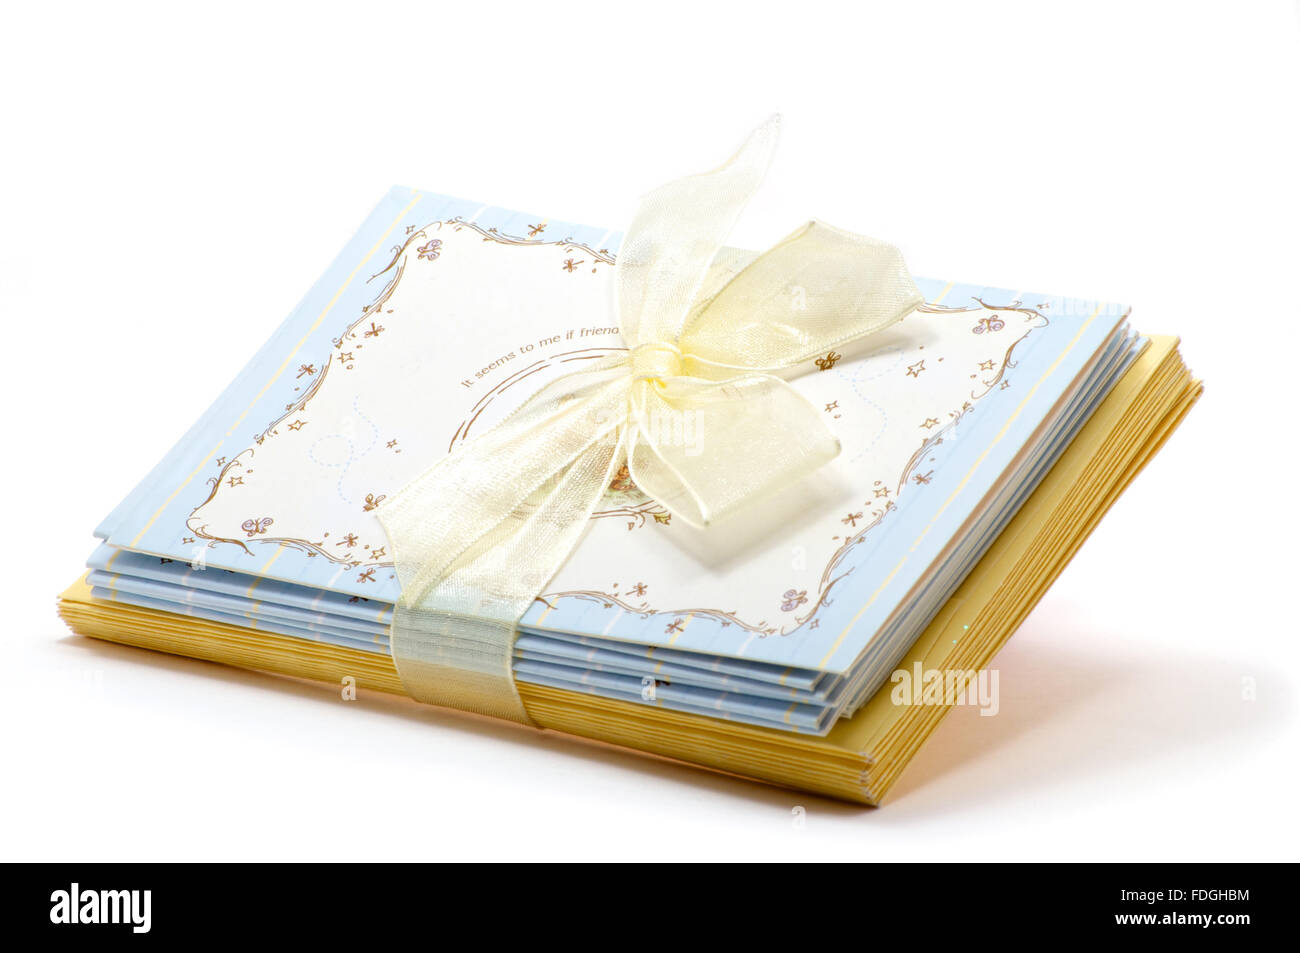 Stack of greeting cards with yellow envelopes over white stock photo stack of greeting cards with yellow envelopes over white kristyandbryce Images